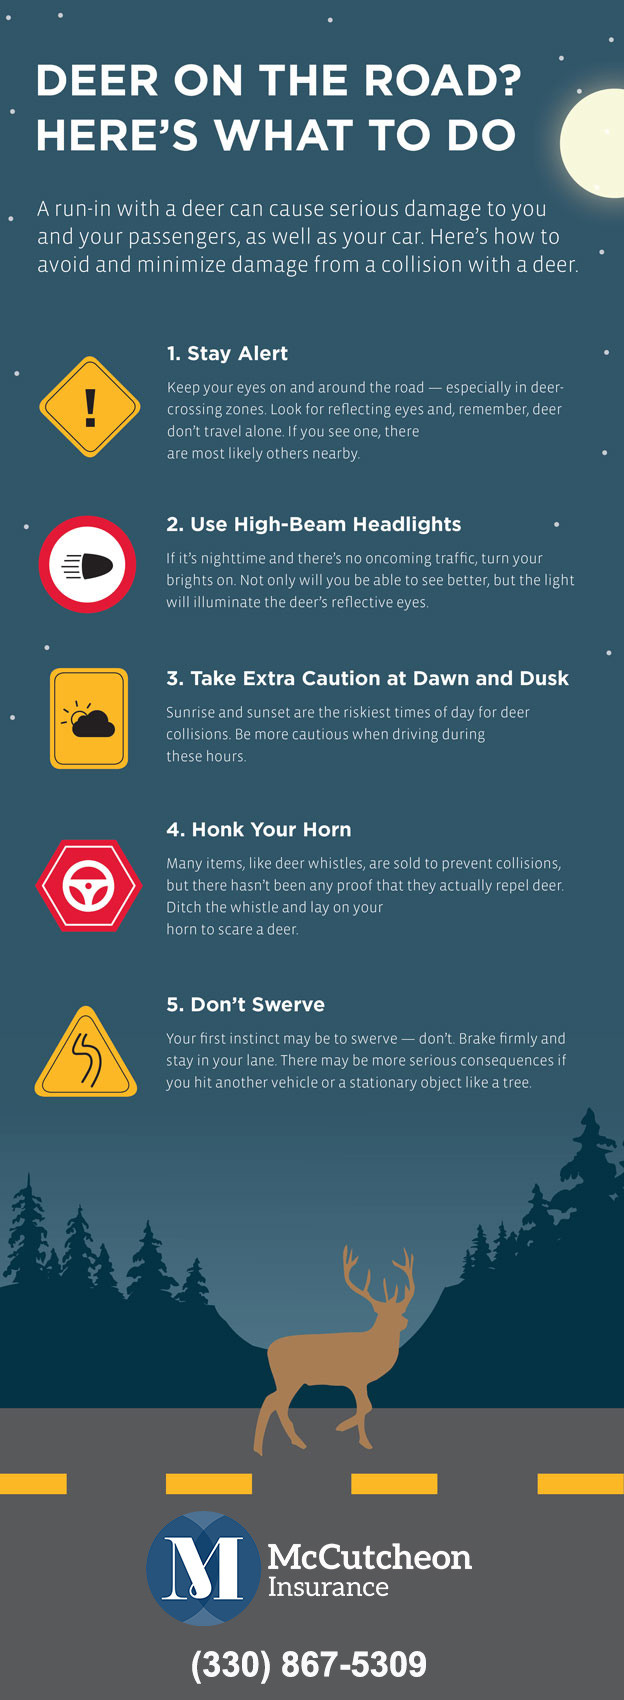 How to Avoid Deer in Road Accidents